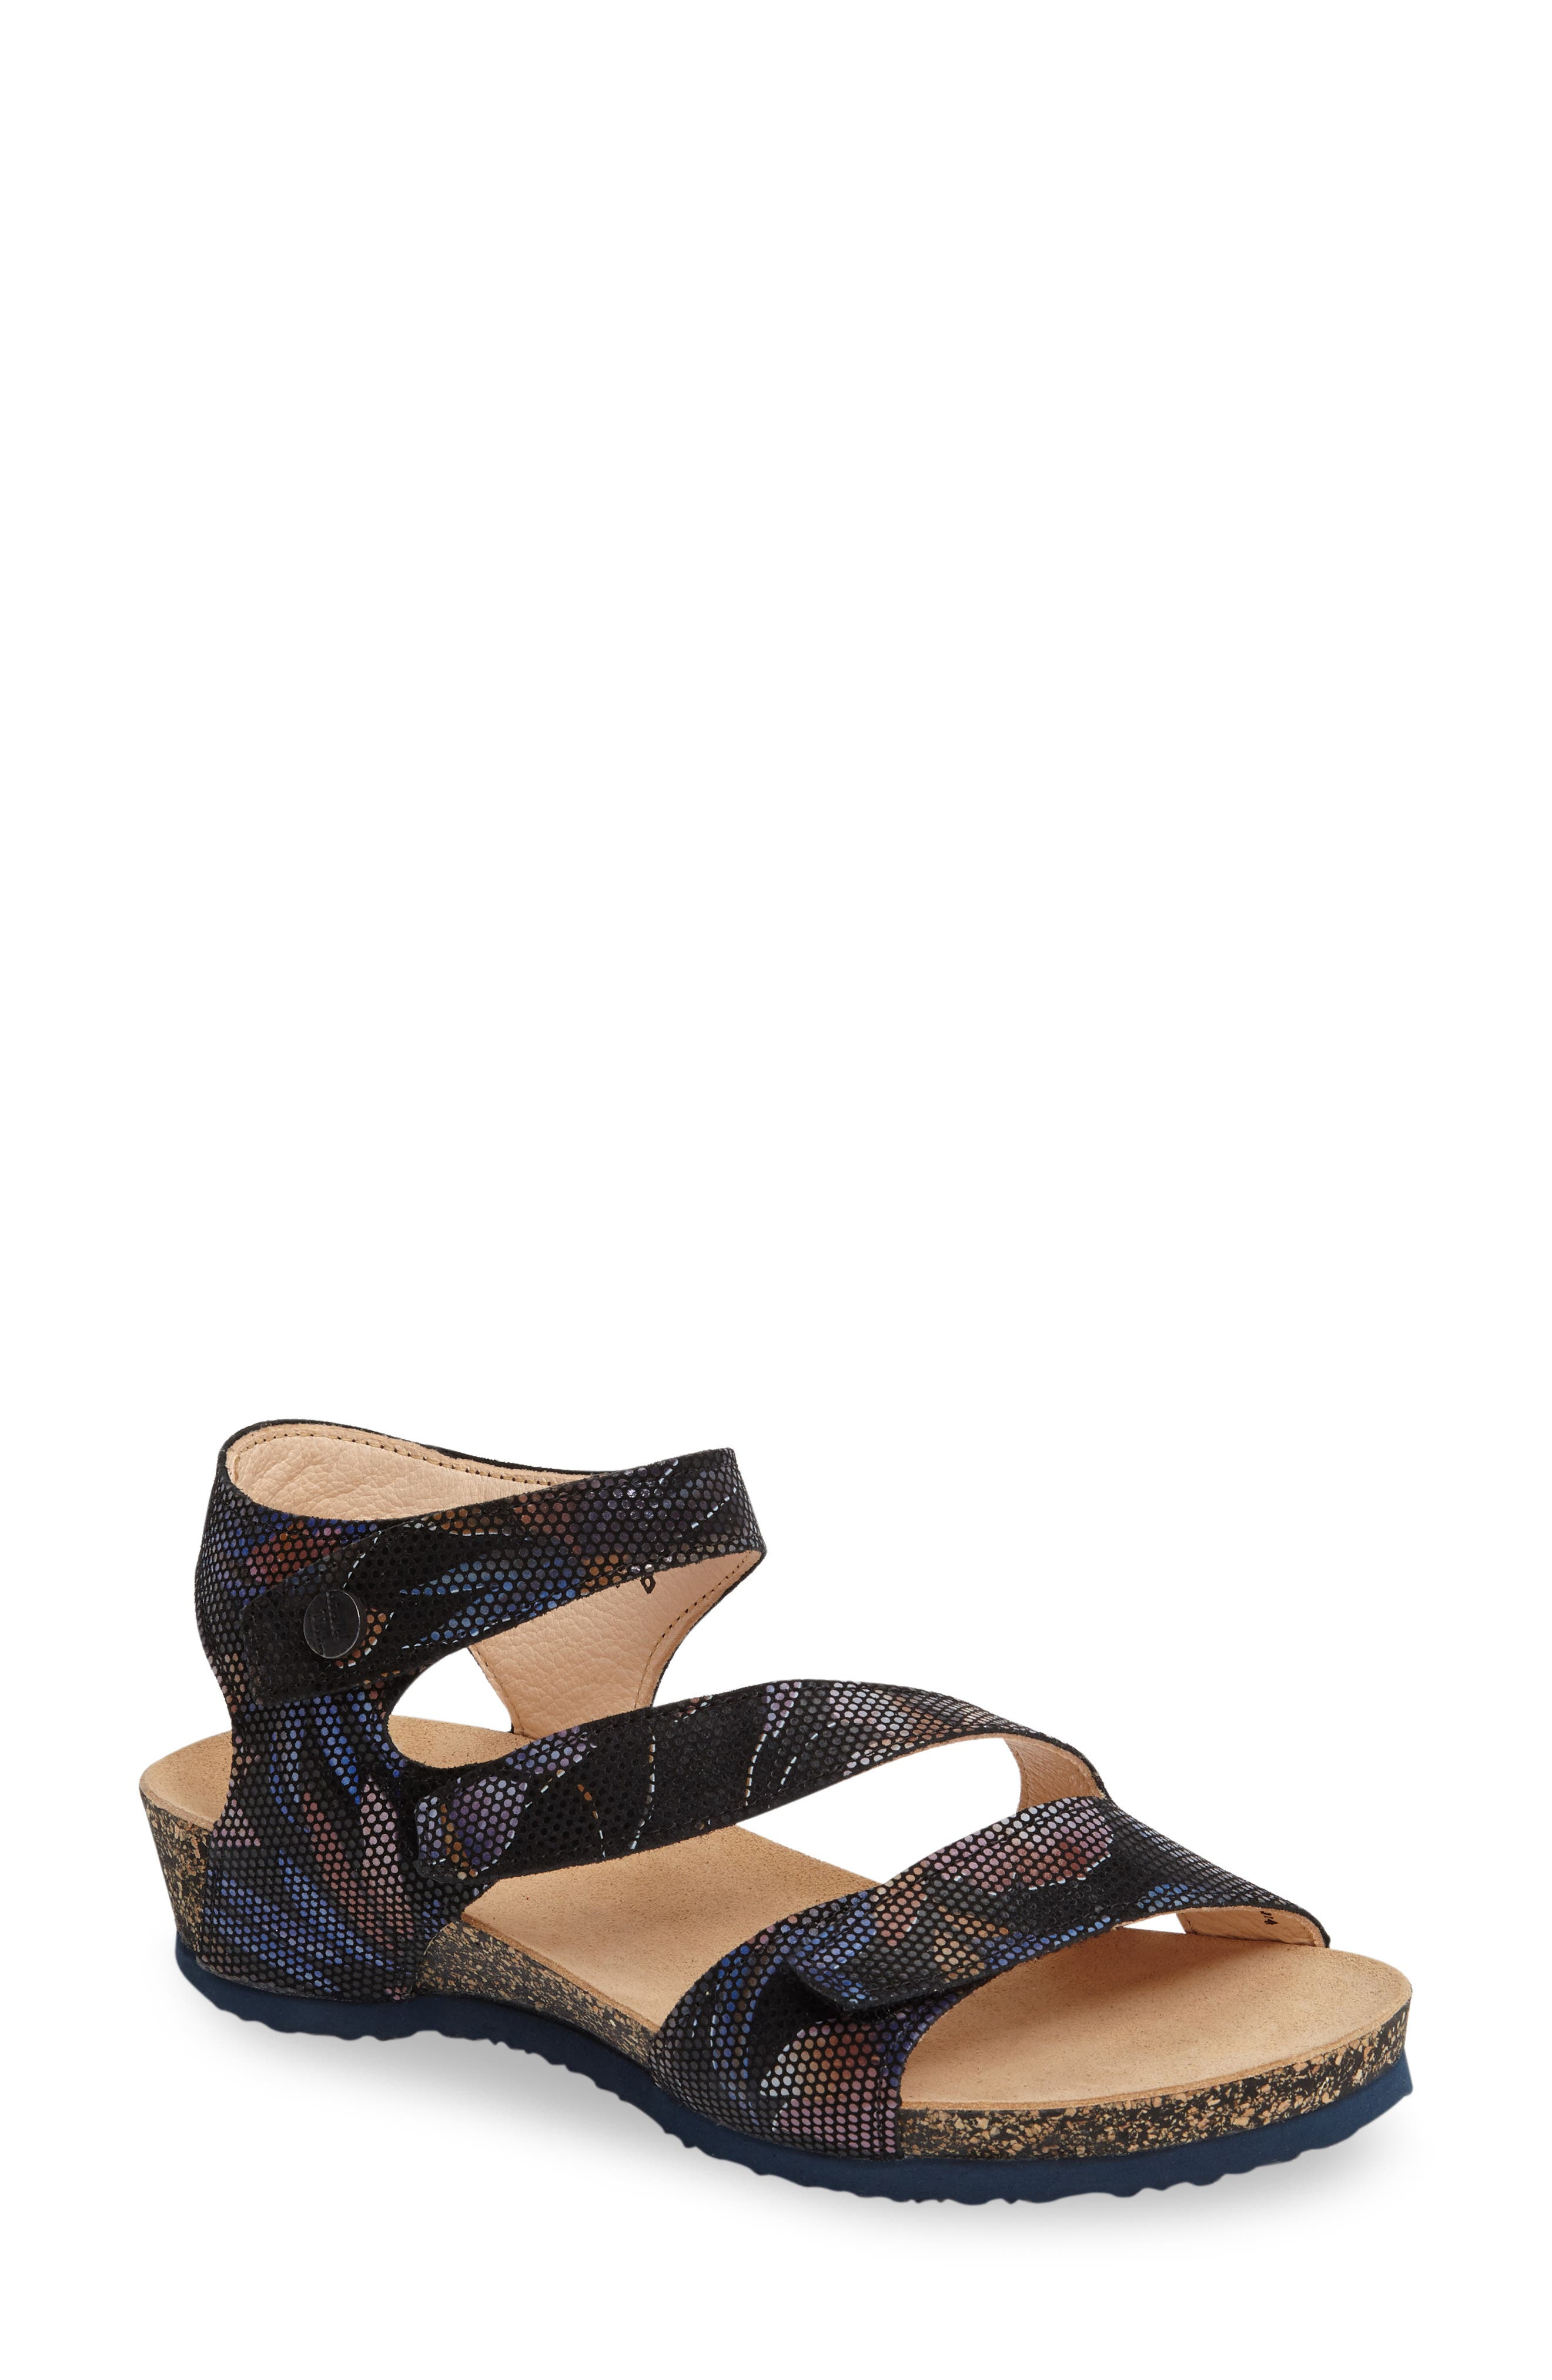 Alternate Image 1 Selected - Think! 'Dumia' Three Strap Sandal (Online Only)